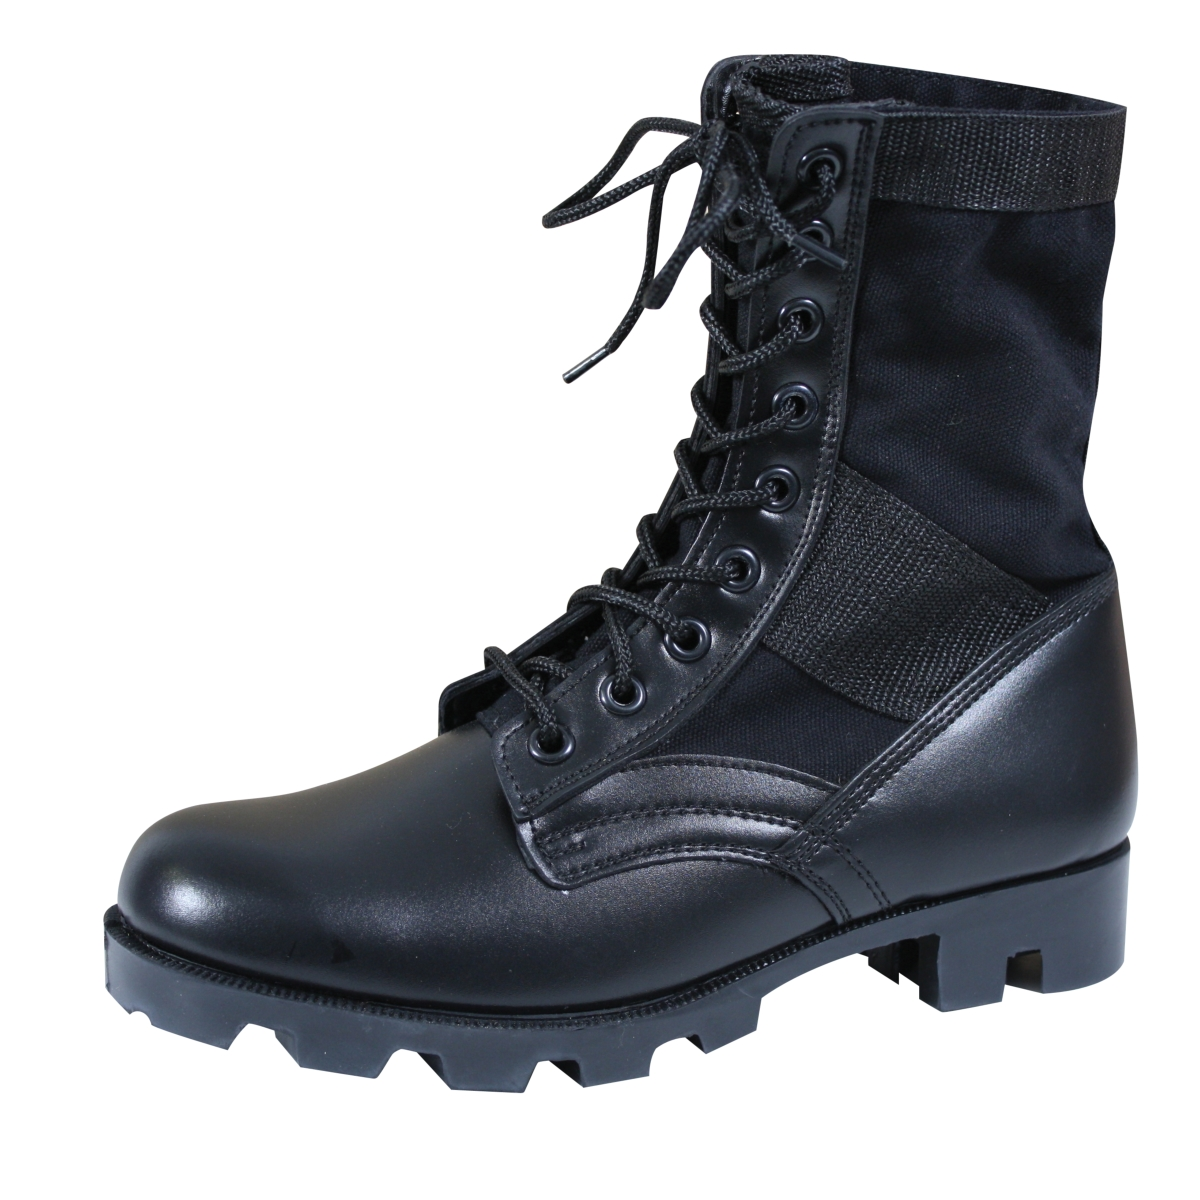 Black-G-I-Style-Discount-Jungle-Combat-Boot-New